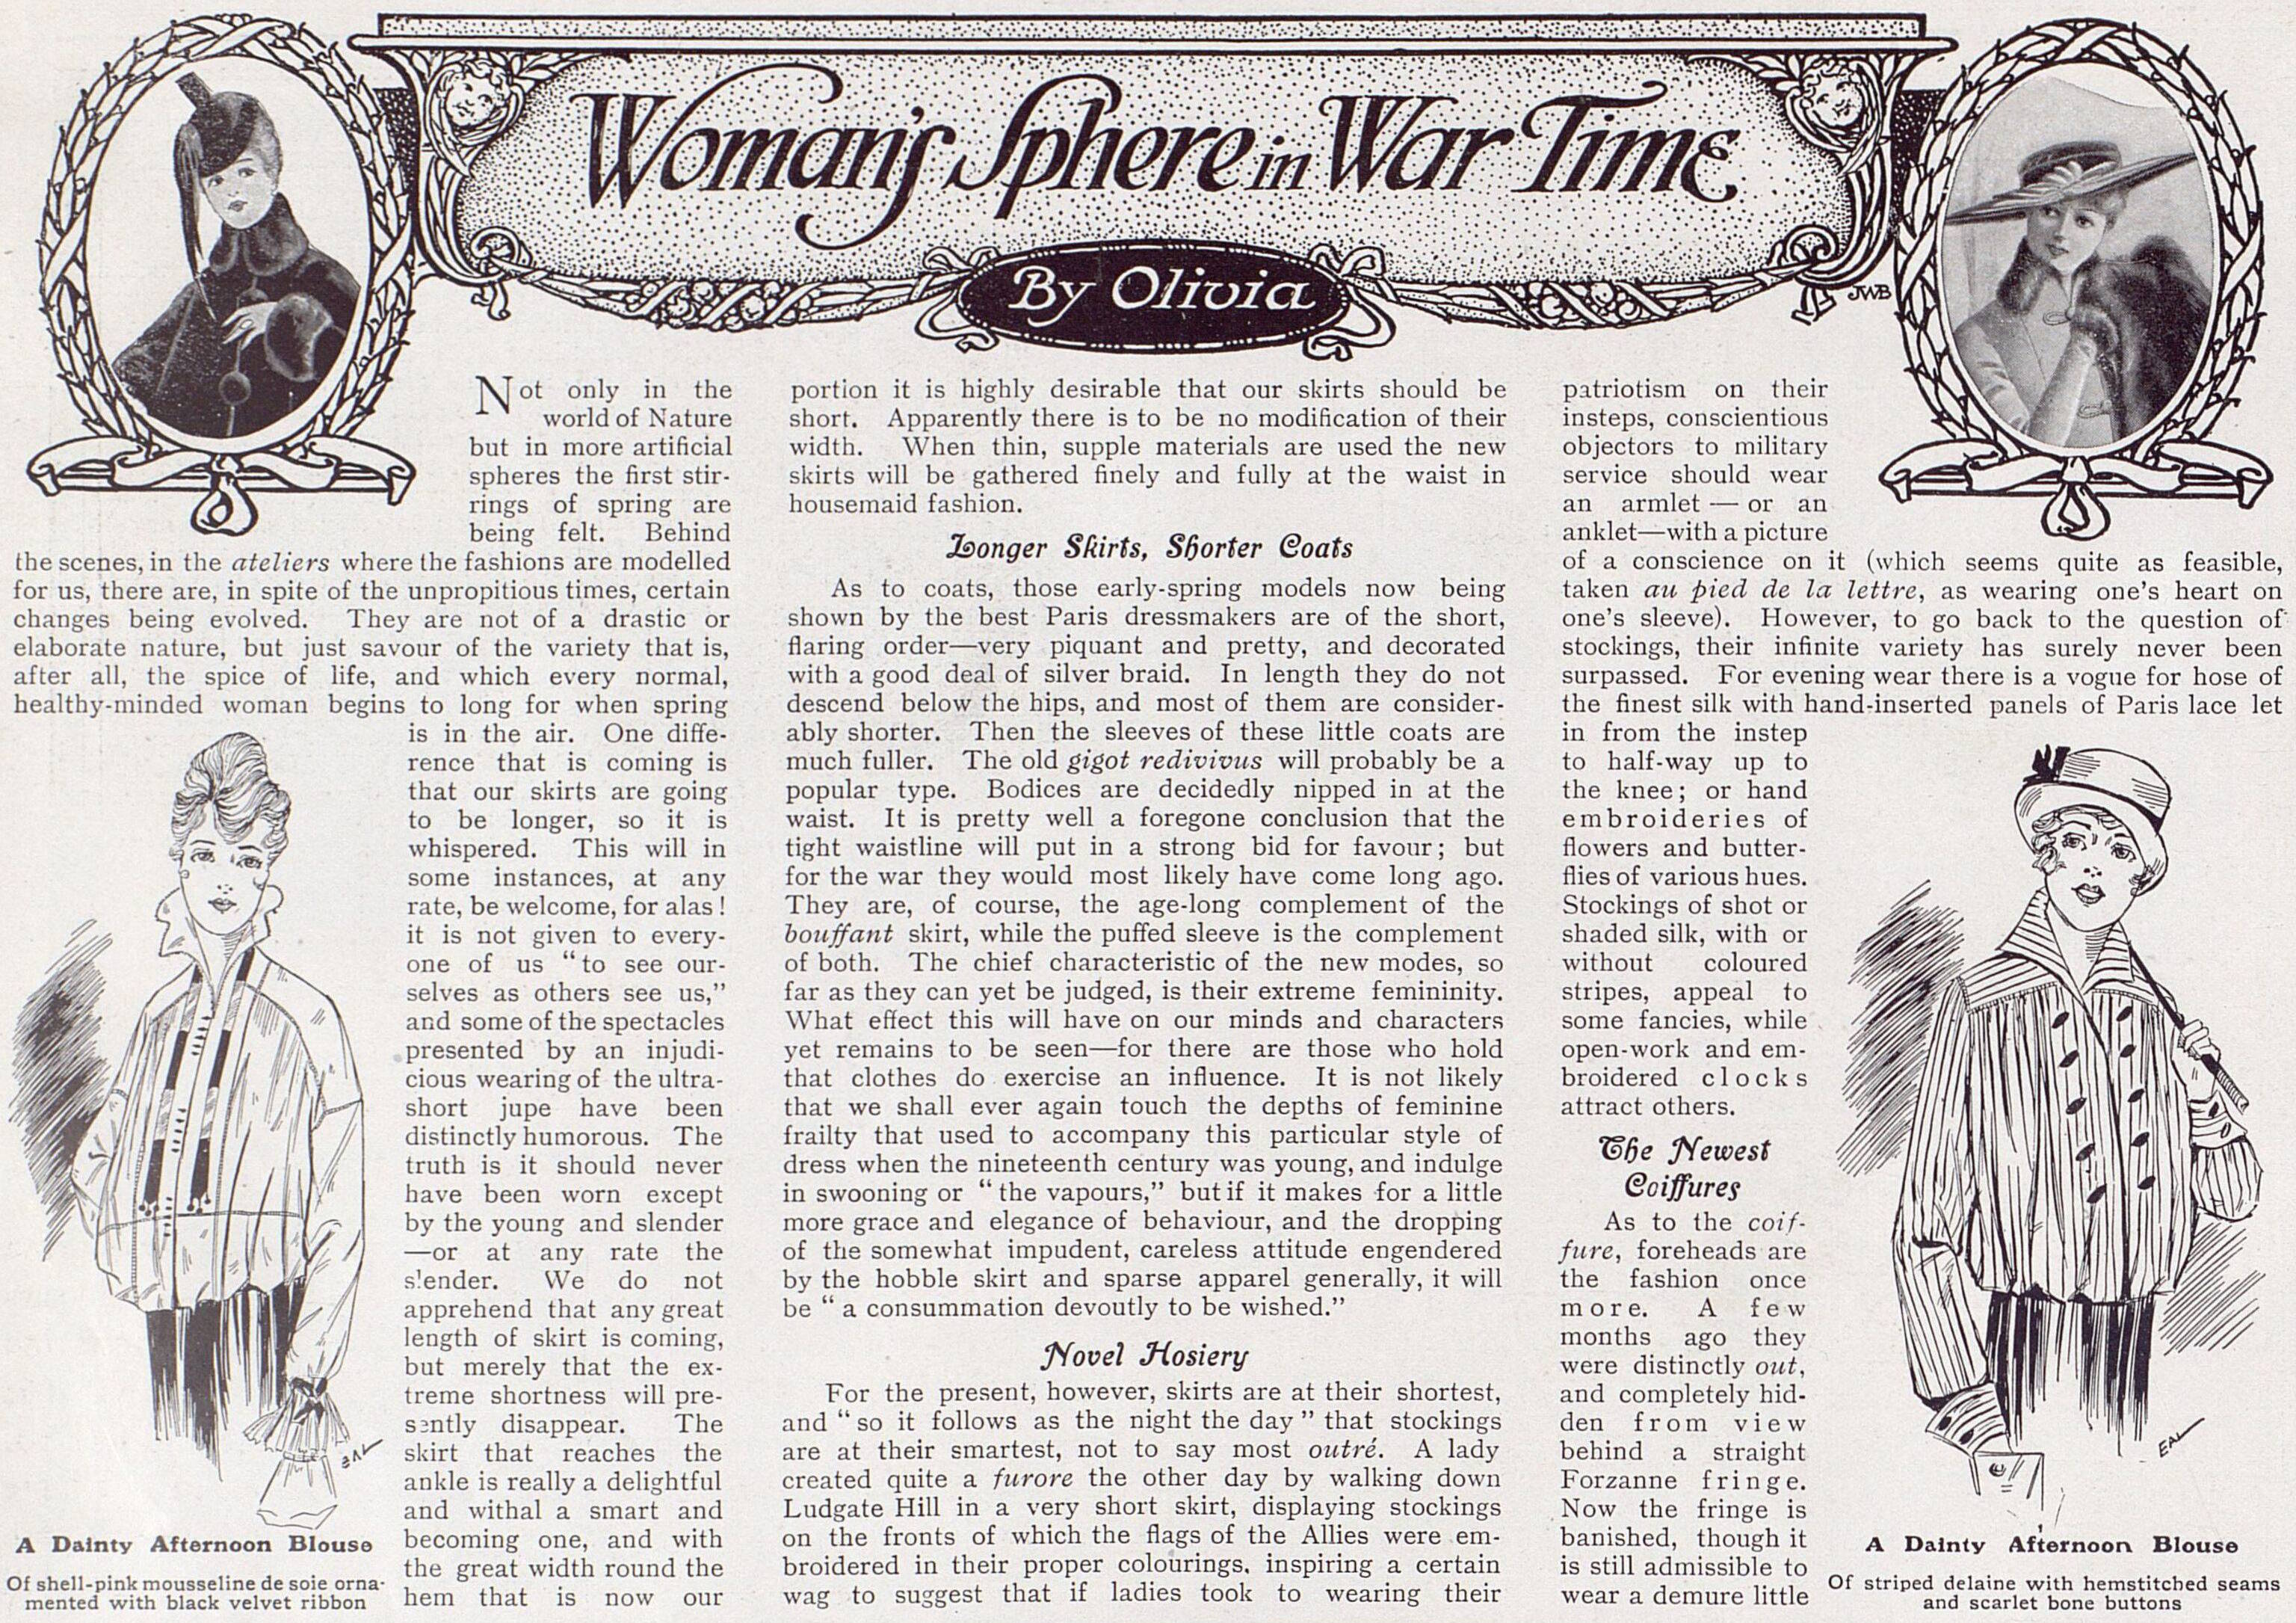 WomansSphereInWarTime_22Jan1916